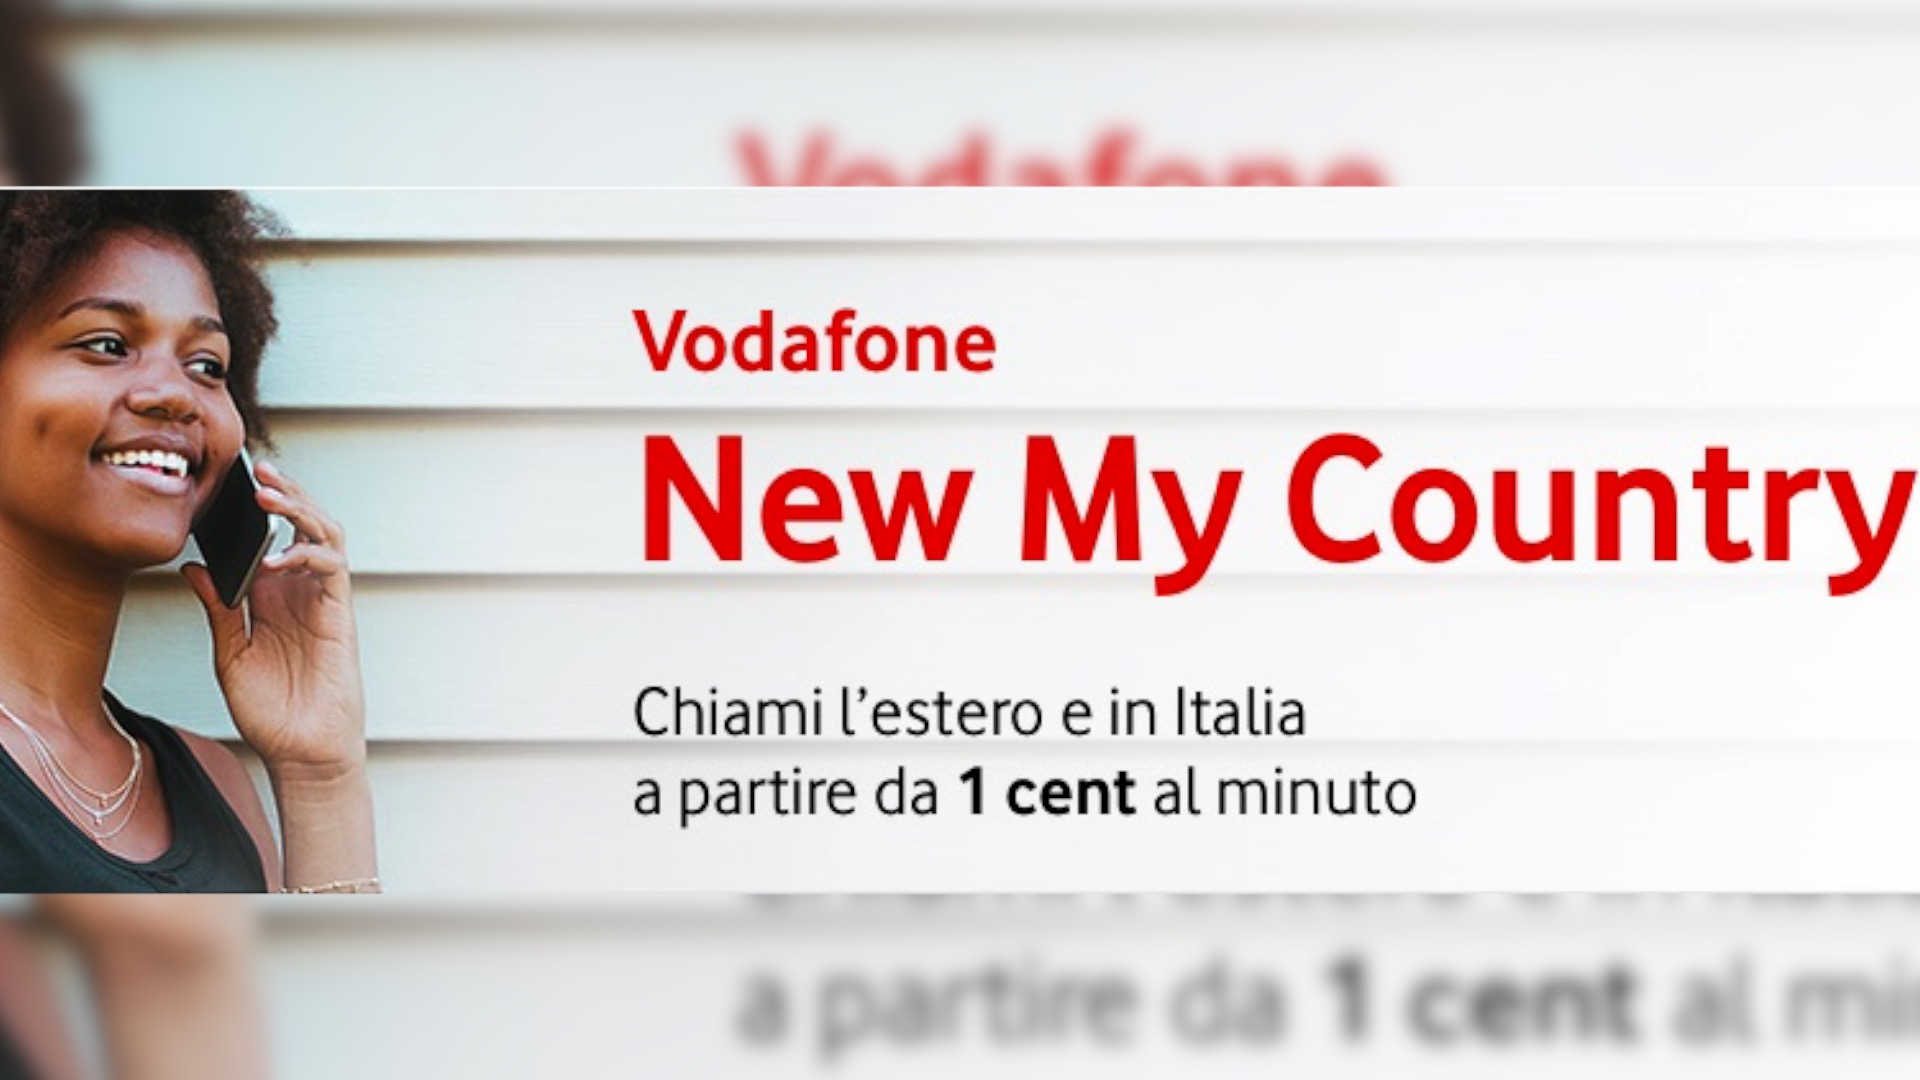 Vodafone New My Country